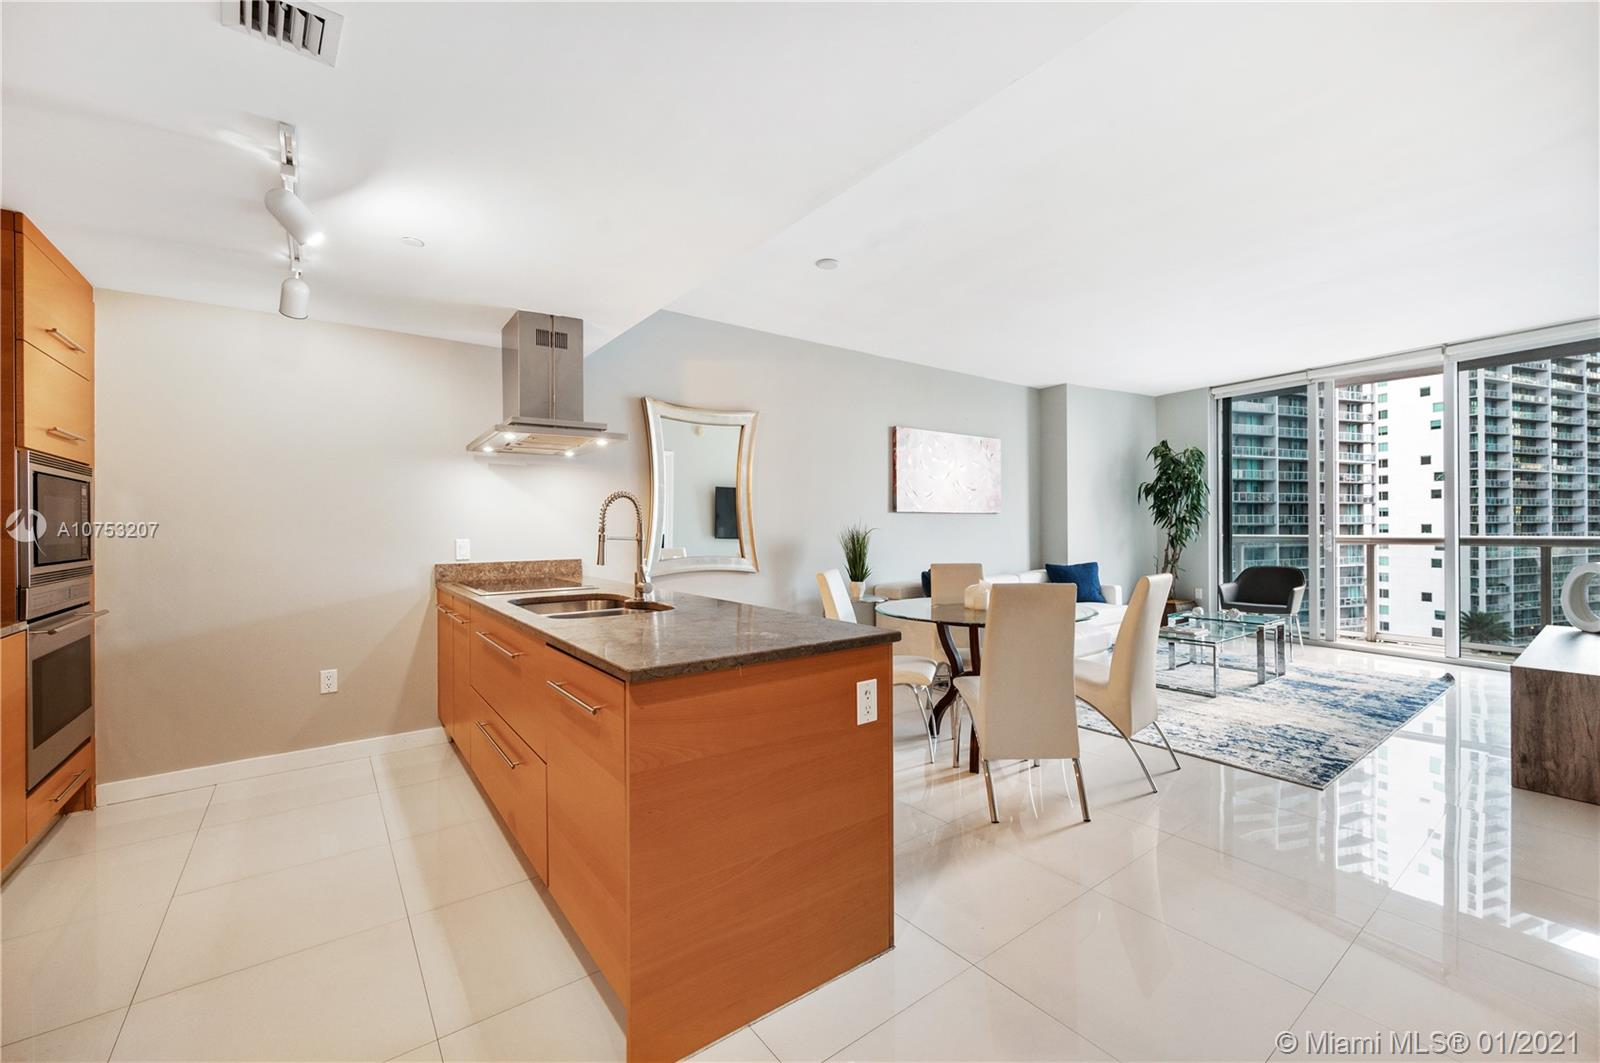 Spacious 1bed/1bath, full service luxury building, icon W Hotel, in the heart of Brickell. Stunning city and river views, sub-zero and Miele appliances, open balcony!! Best spa in Brickell, gym, largest just remodeled pool in Miami, rooftop pool, restaurants and more